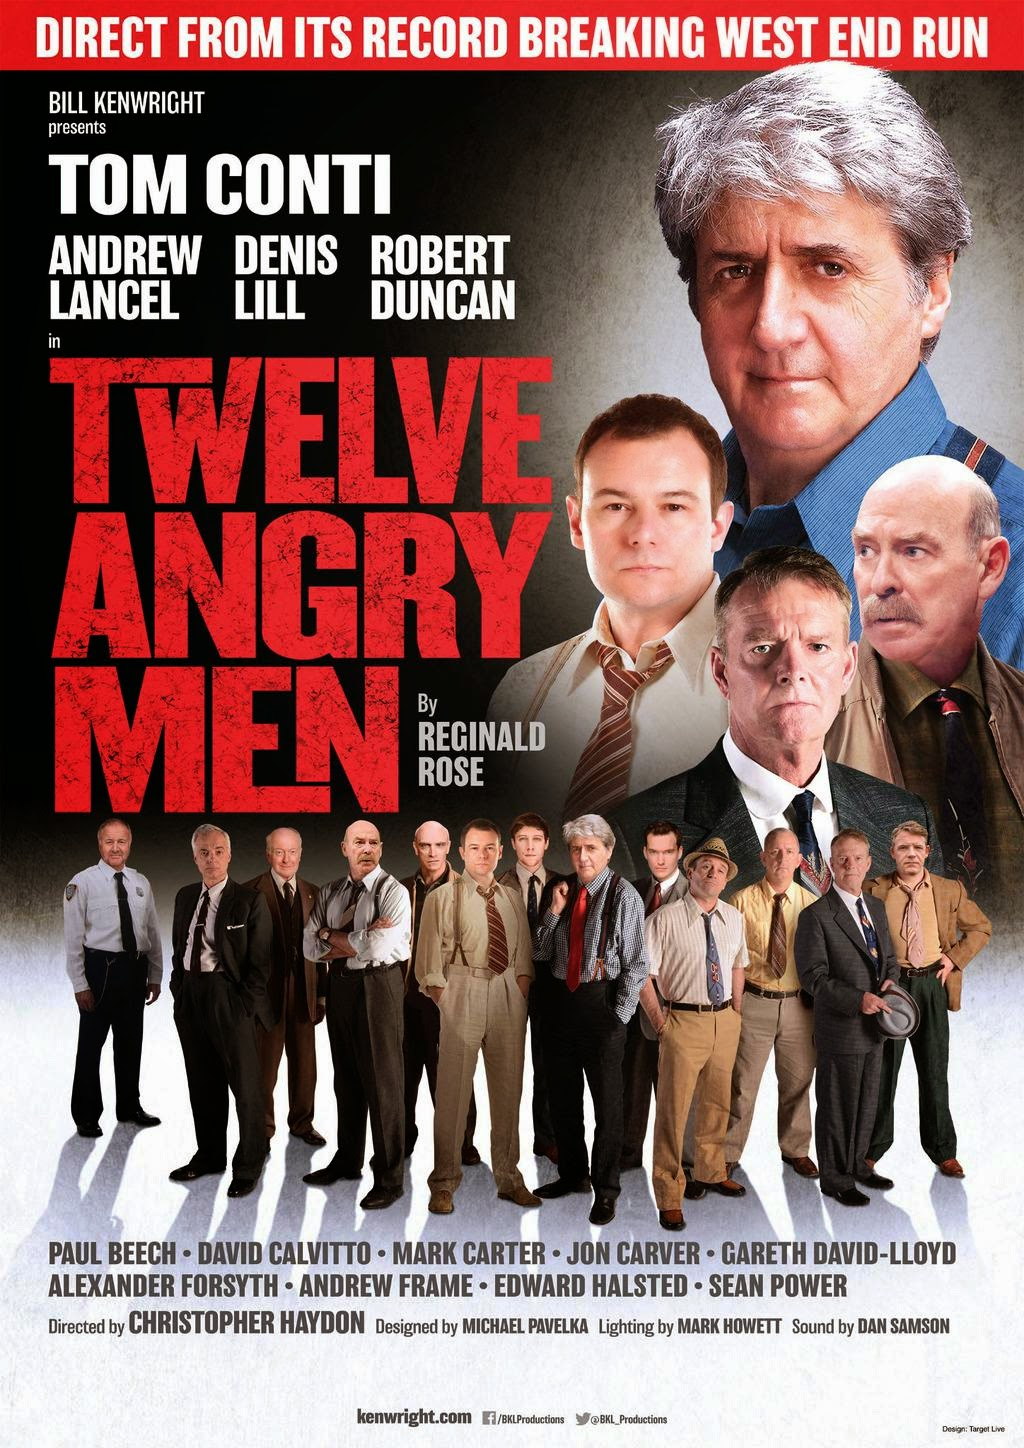 juror 8 in twelve angry men by reginald rose Twelve angry men, by the american playwright reginald rose, was originally written for television, and it was broadcast live on cbs's show studio one in 1954 the fifty-minute television script can be found in rose's six television plays , published in 1956 (out of print in 2005.